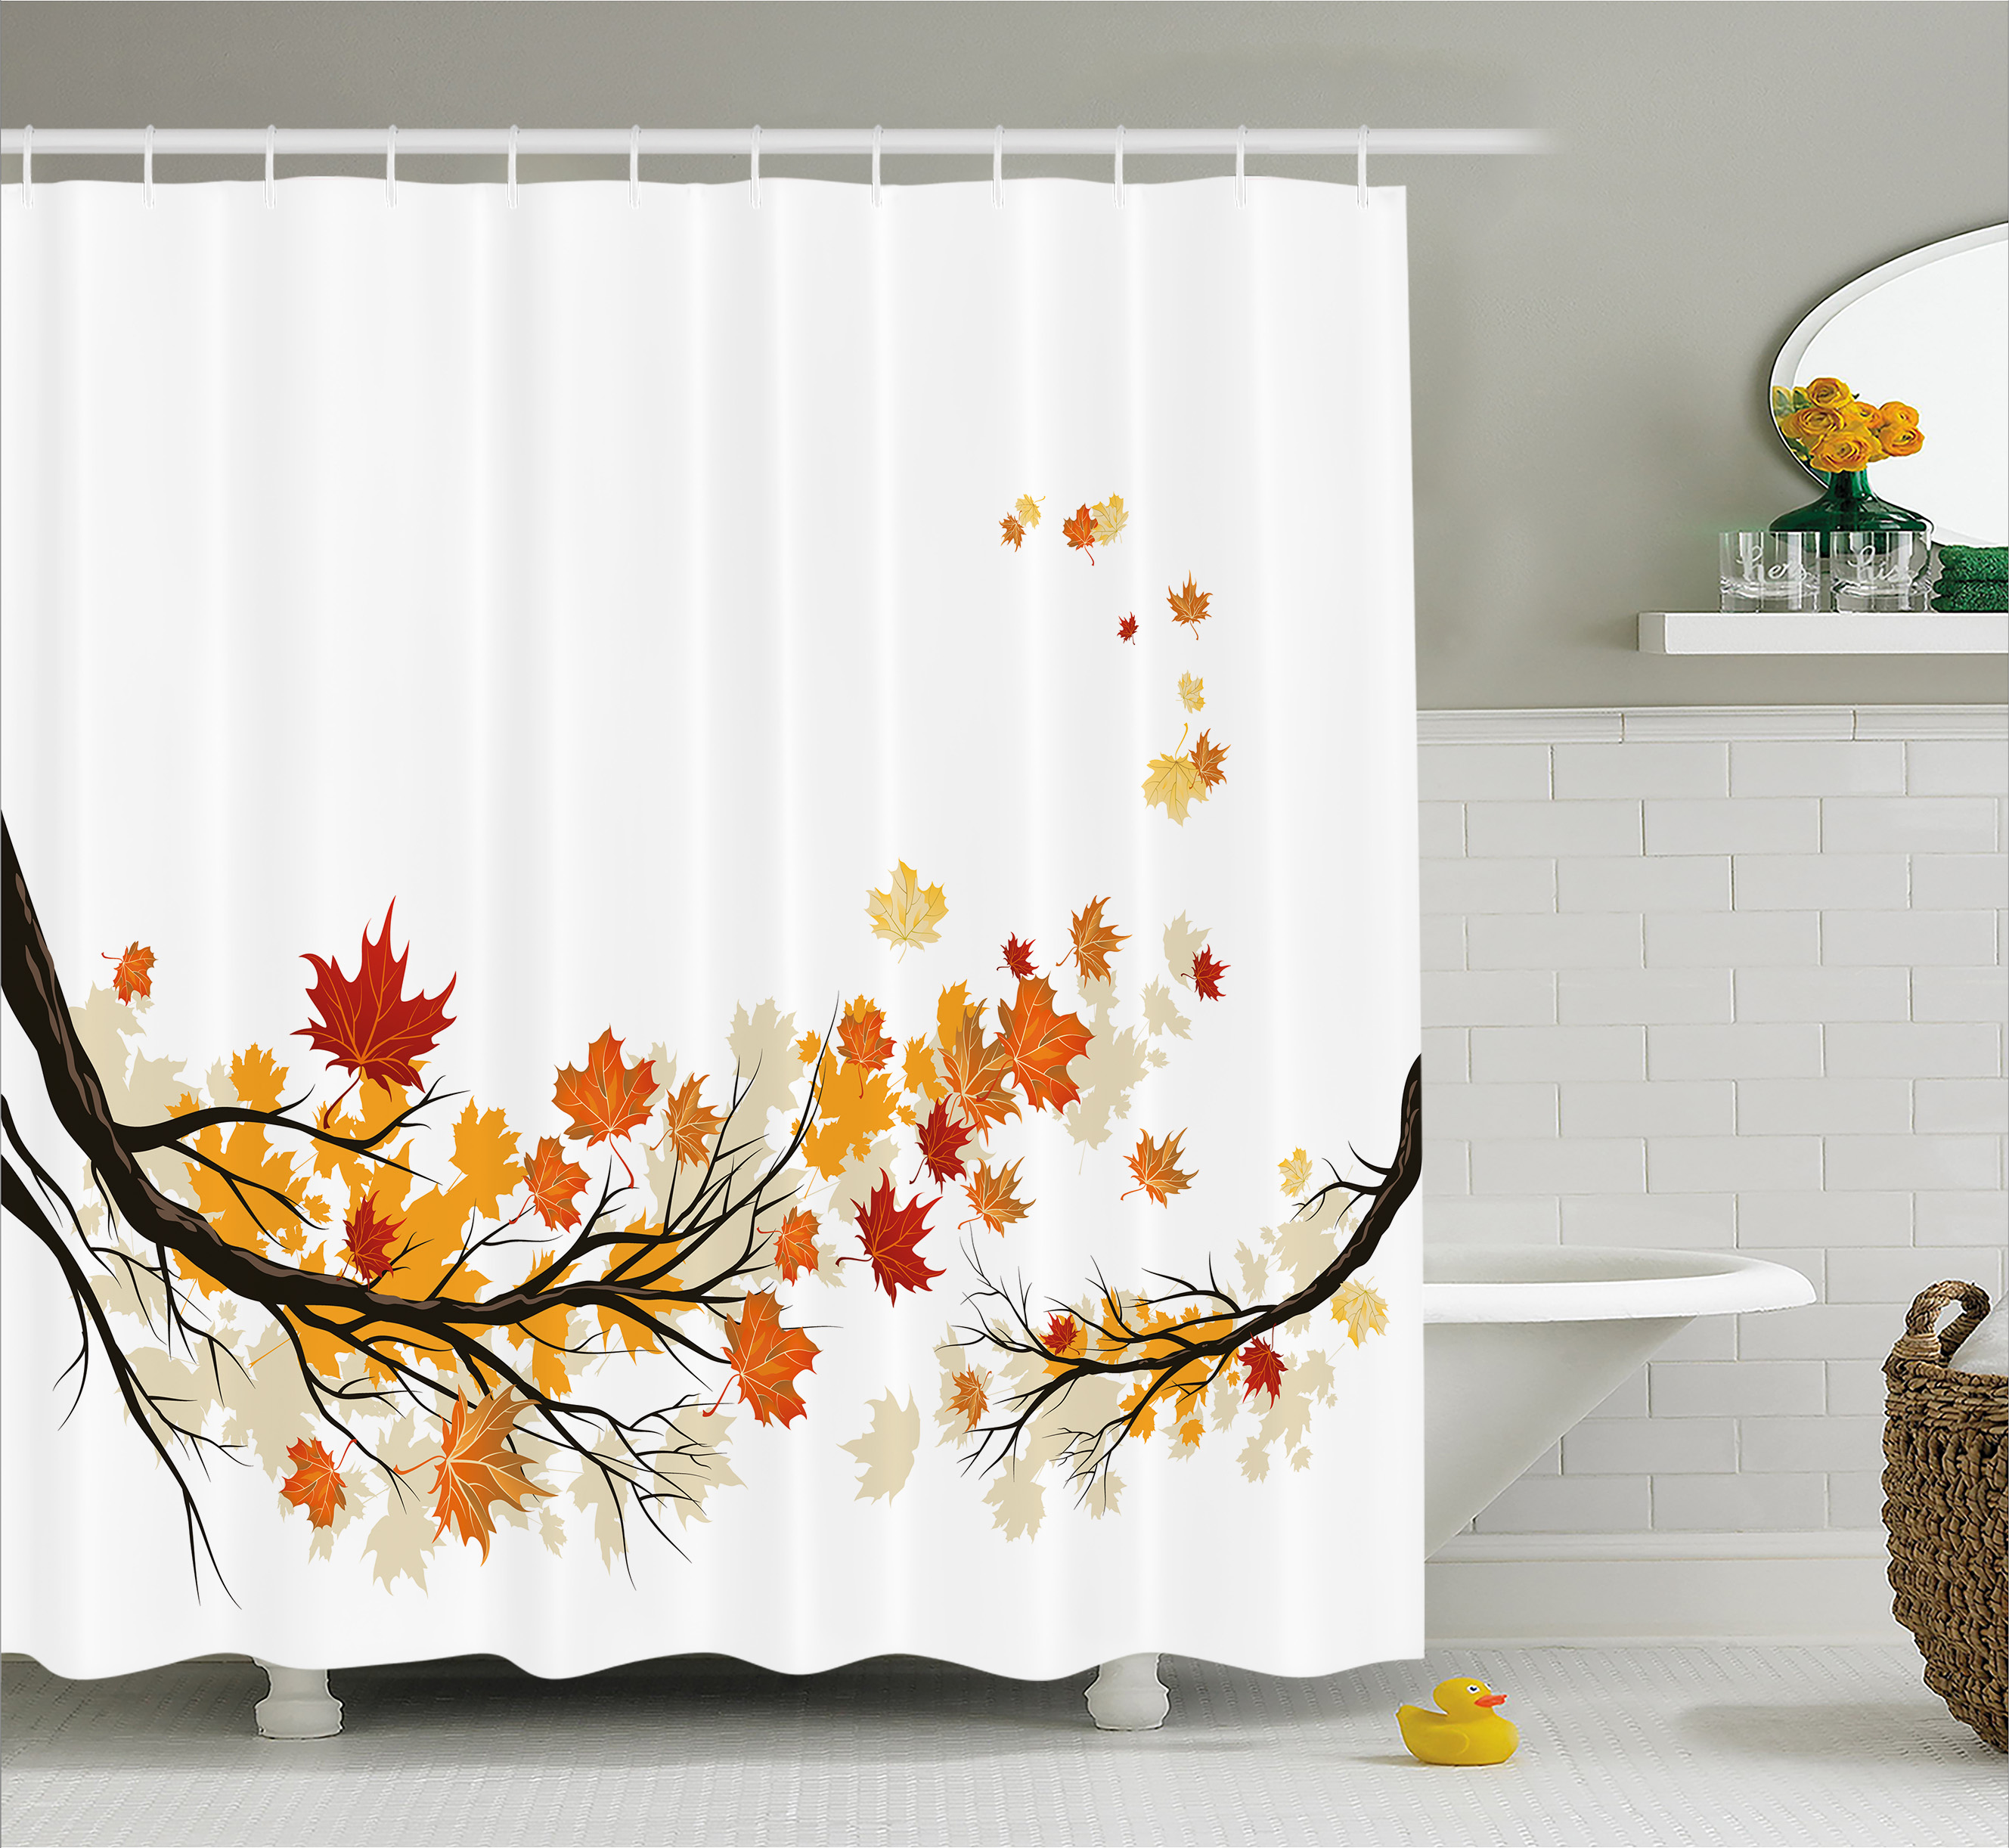 Fall Decorations Shower Curtain, Swirling Bended Fall Branches With Colored  Leaves Pastoral Season Print,